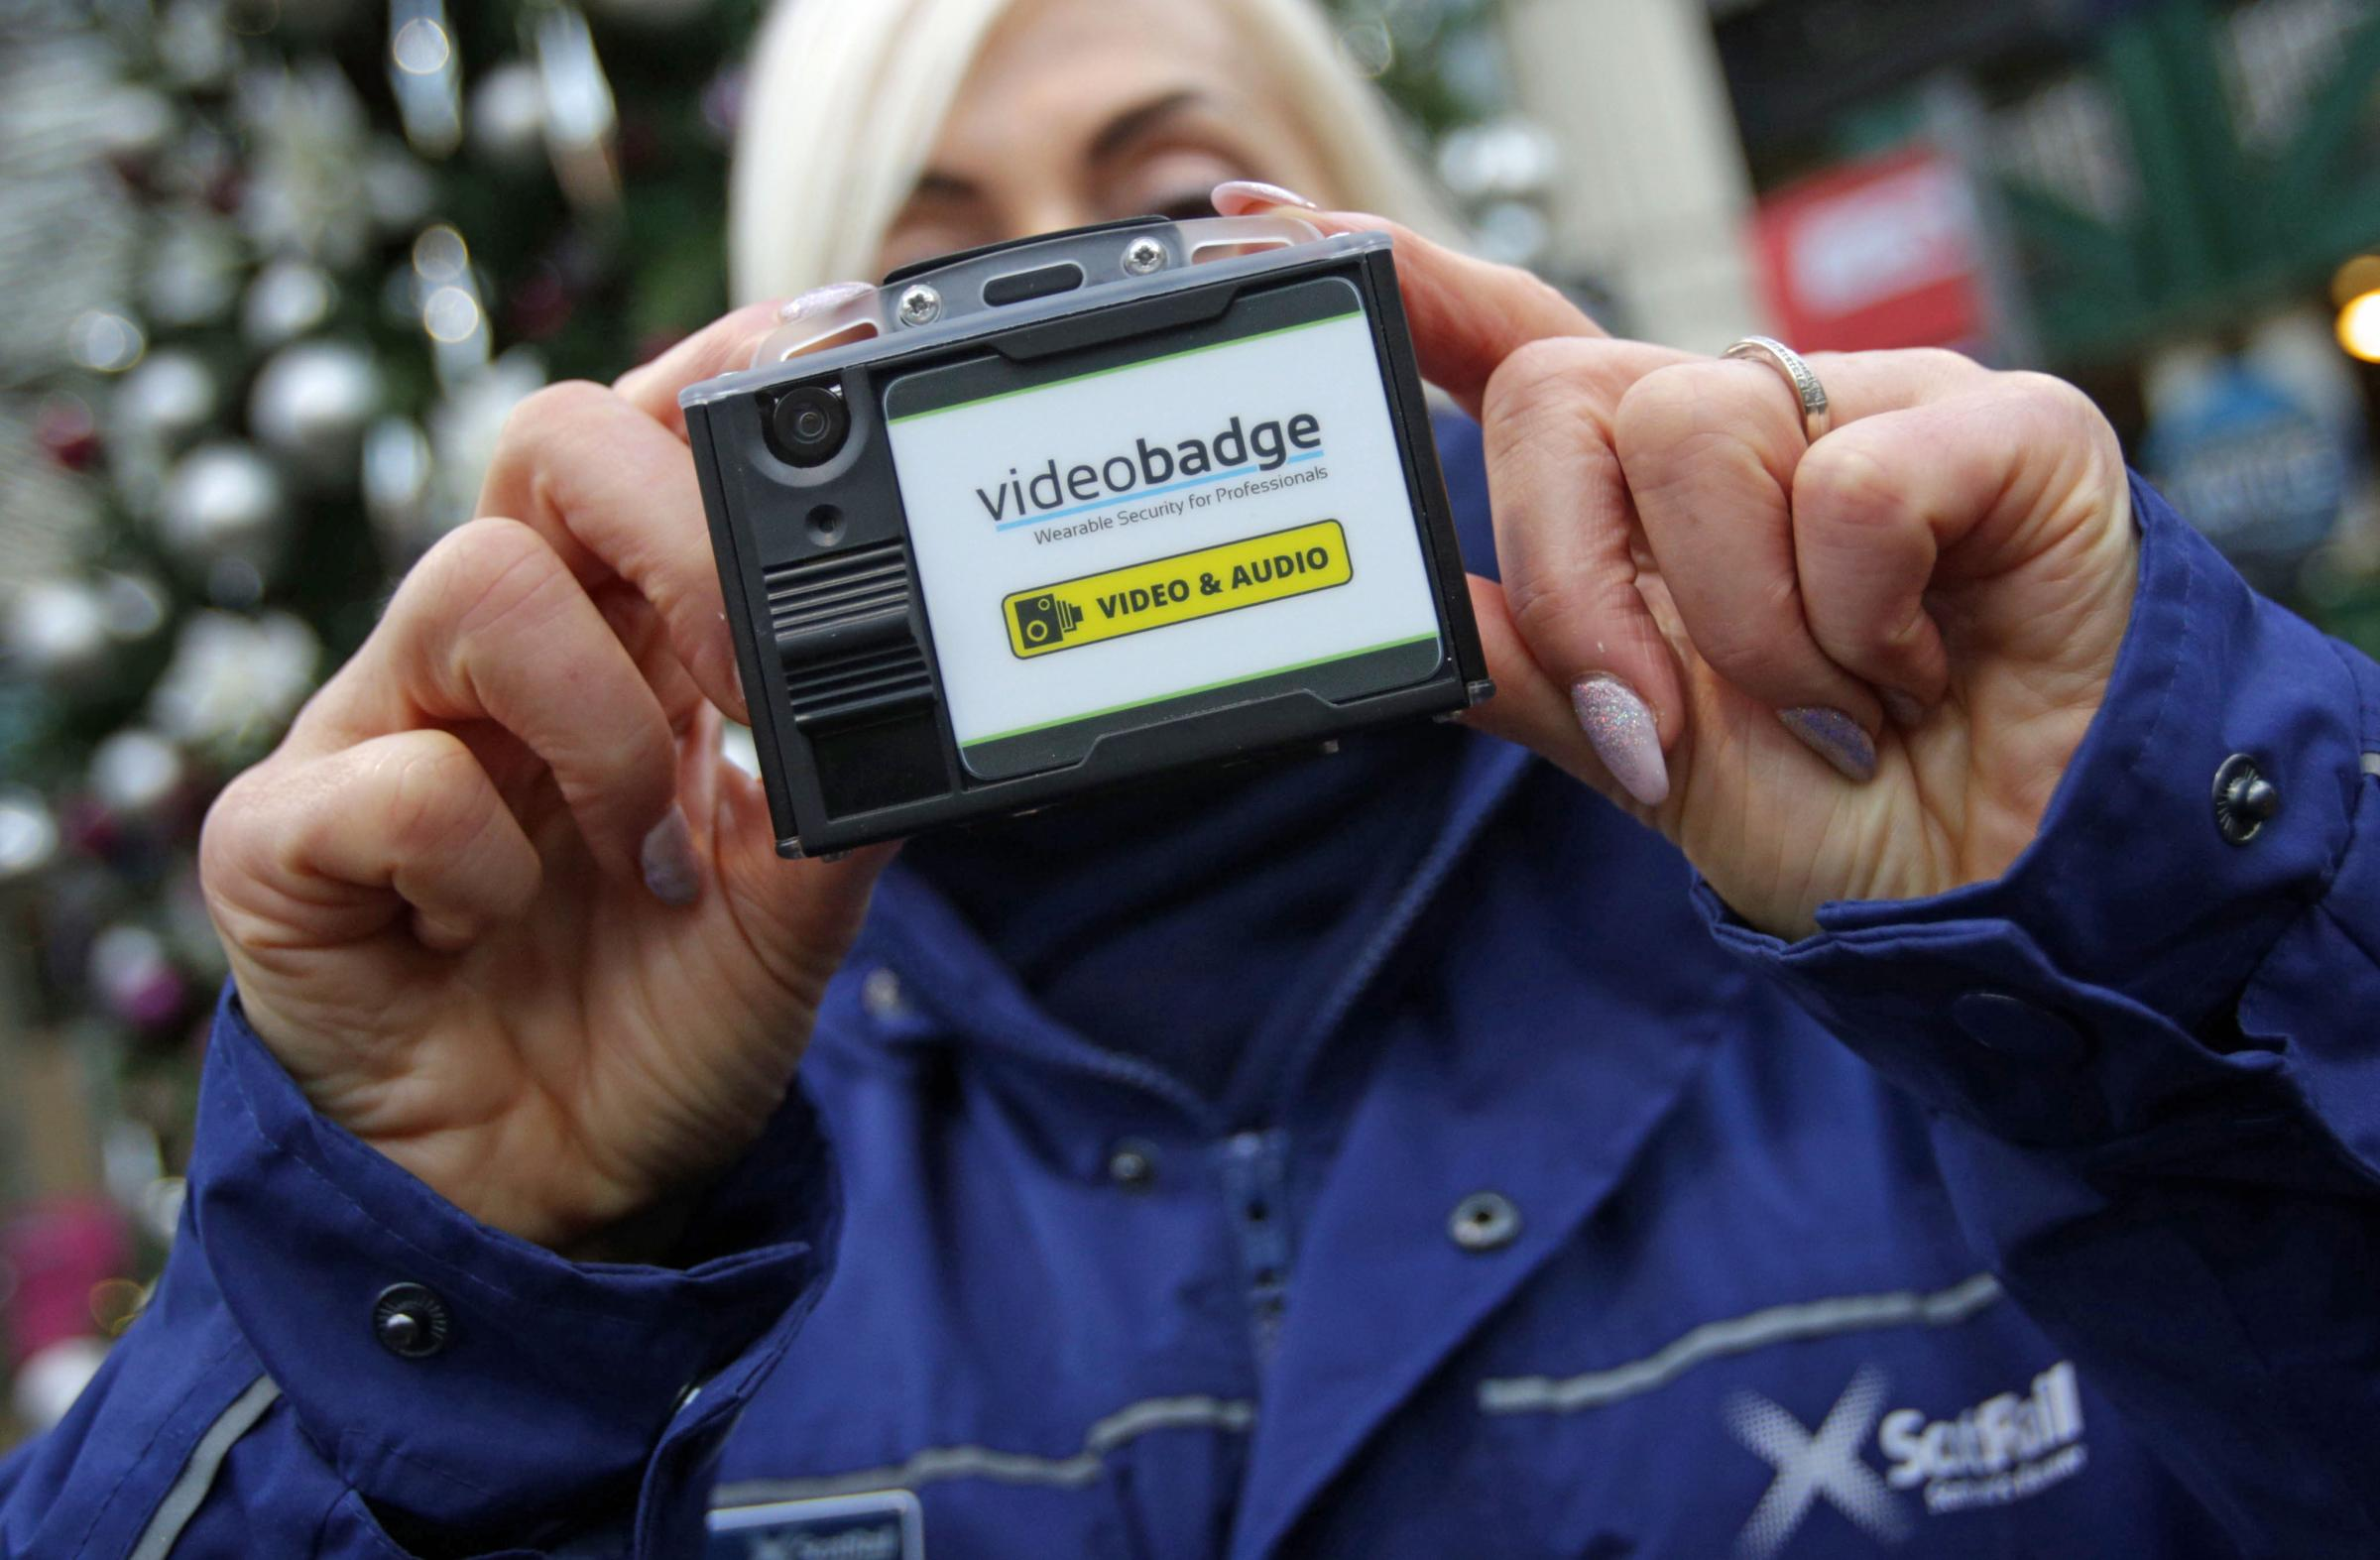 A member of ScotRail staff holds a new body-worn CCTV camera at Waverley Station